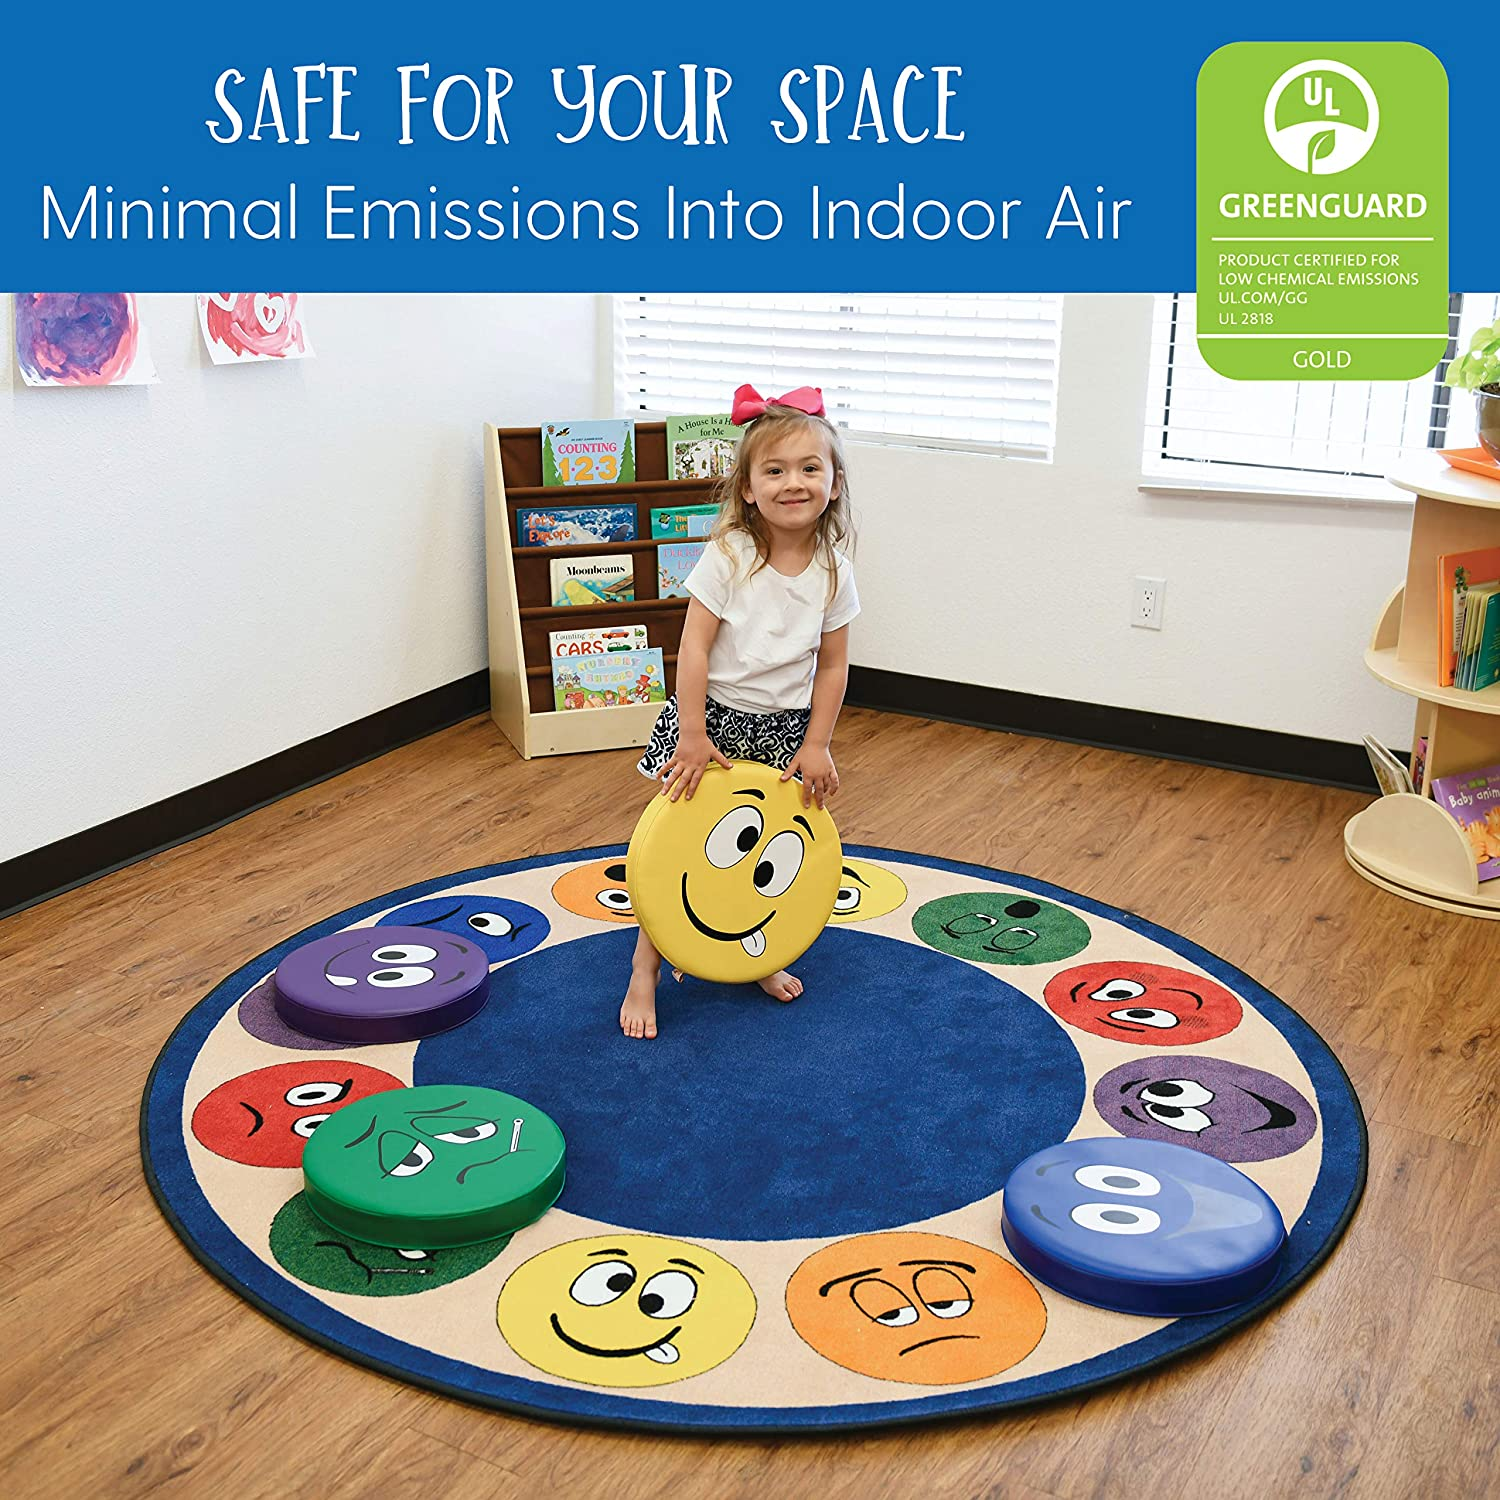 - Assorted Home FDP SoftScape Expression Round Cushions for Kids Flexible Seating; Teach and Learn Emotional Recognition in Classrooms 12-Piece Set Preschools Daycares